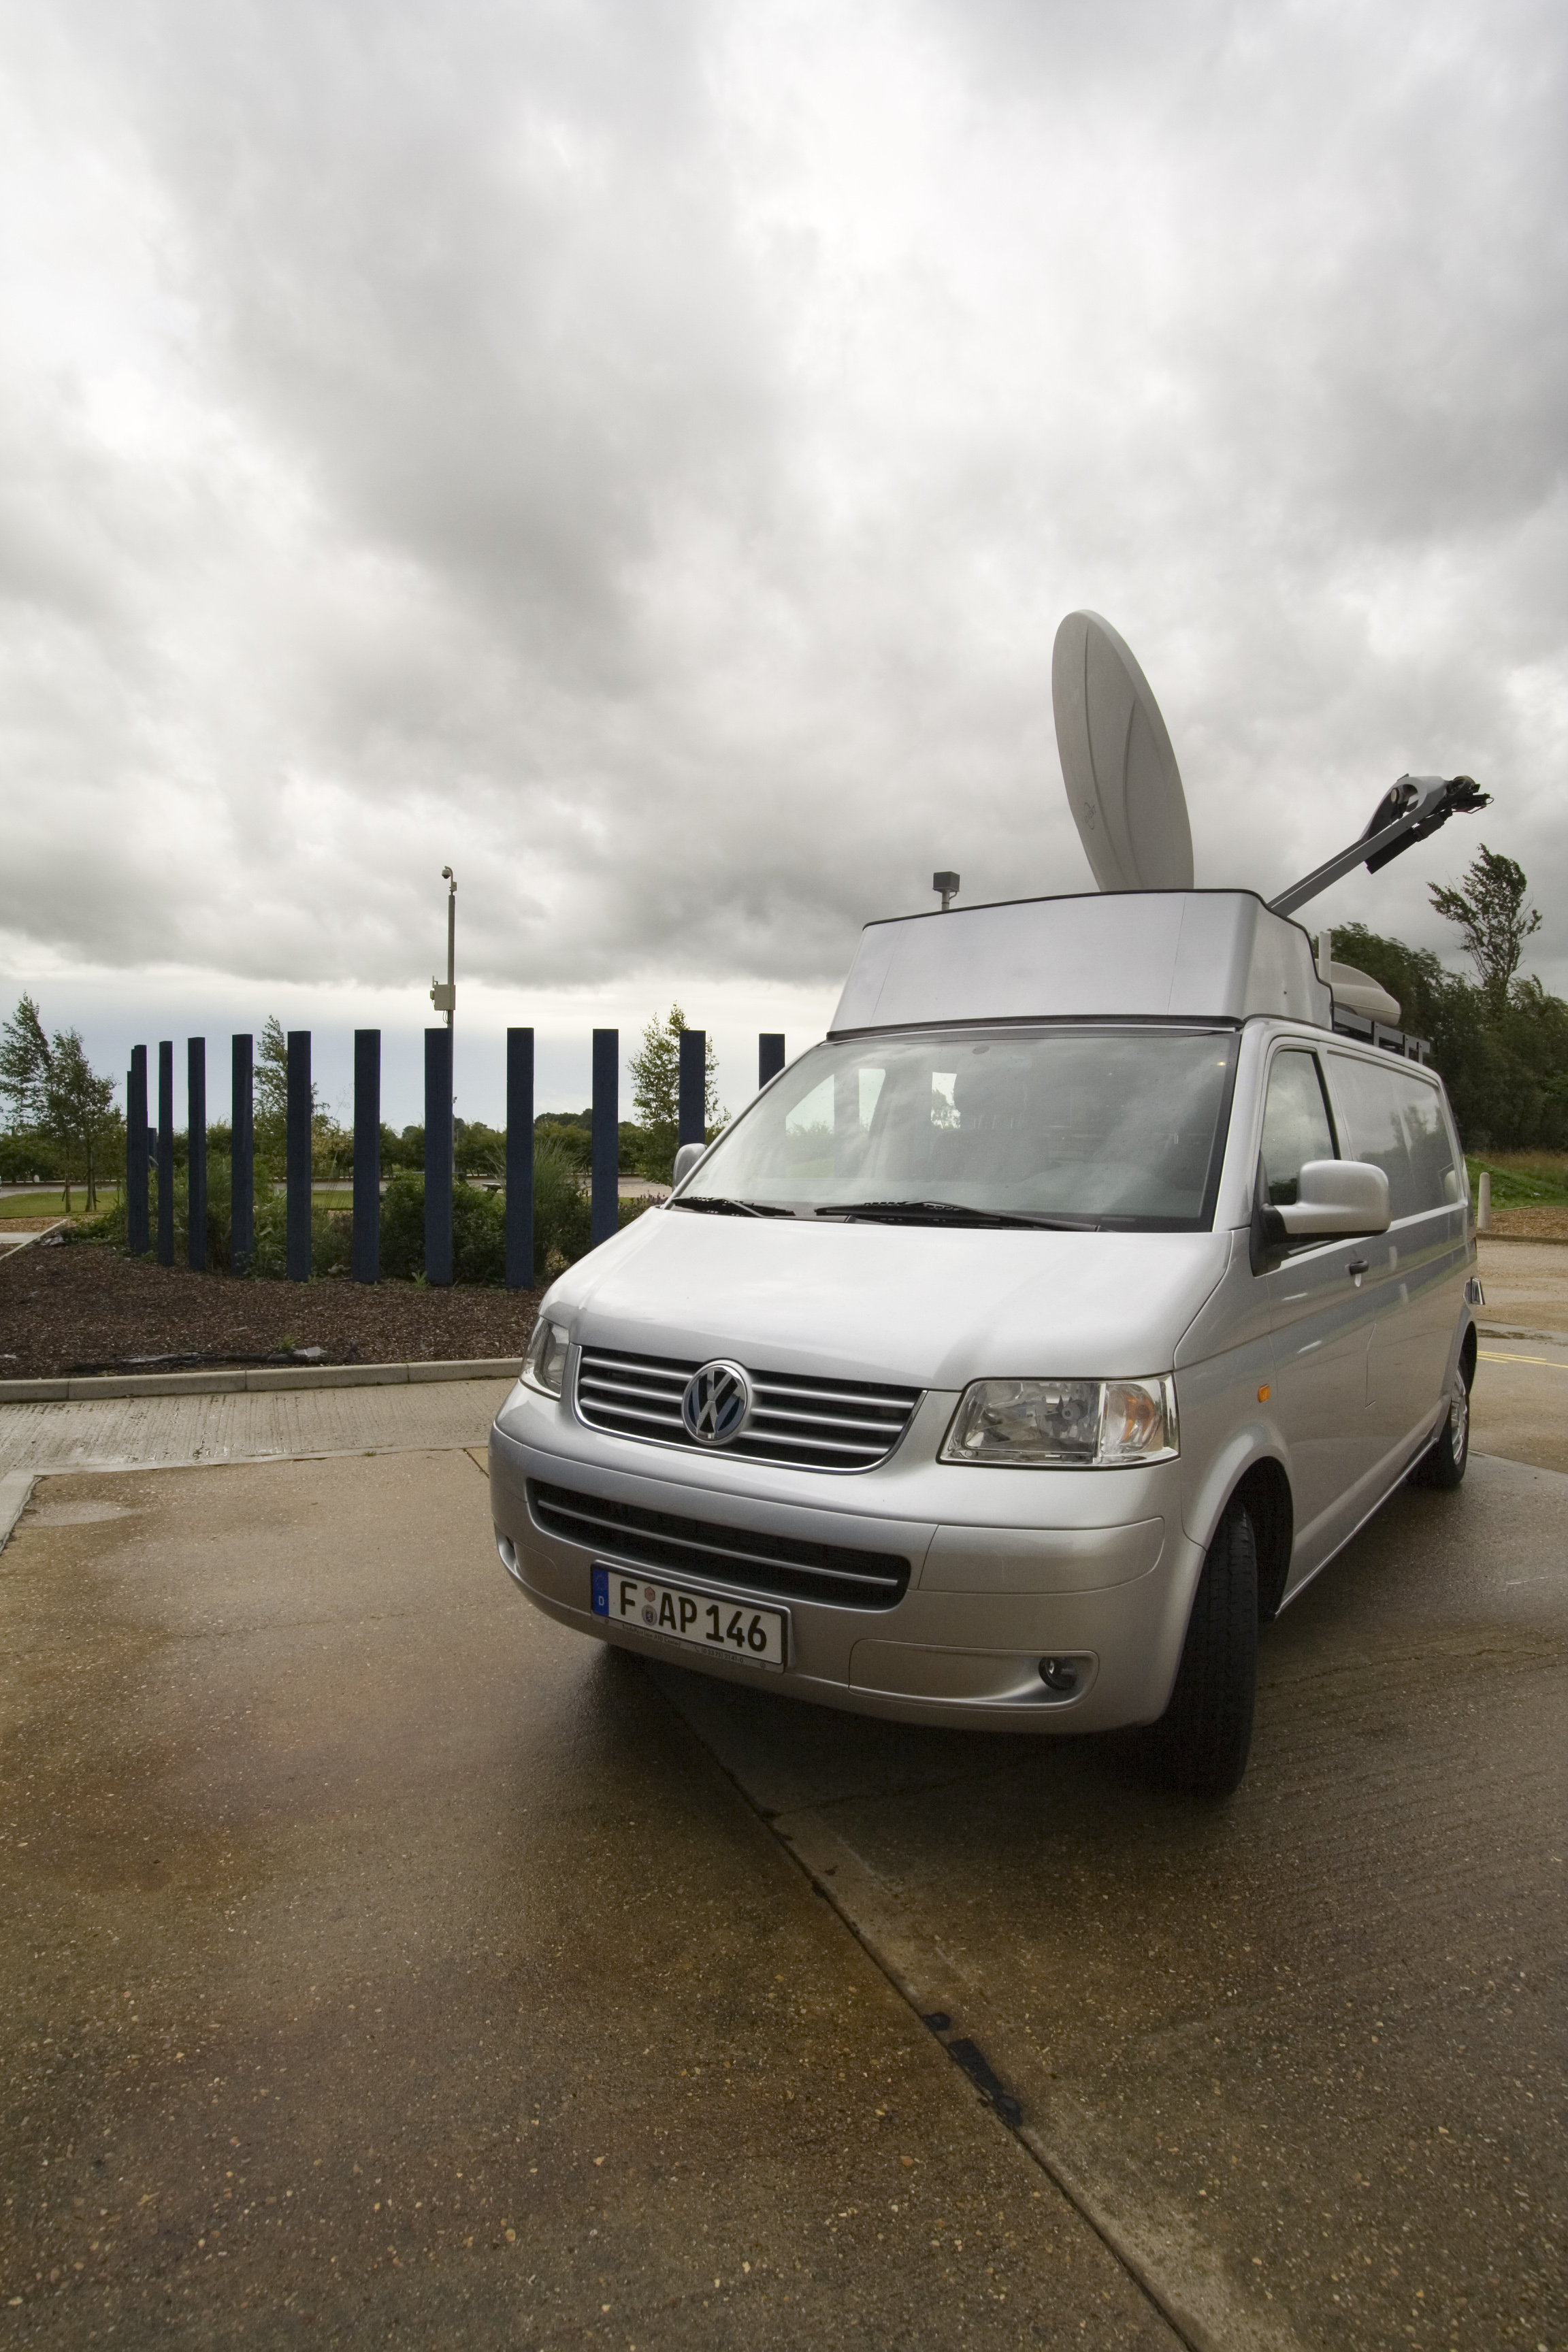 OB Truck Photos 3.jpg - Outside Broadcast Vehicle, Ely, Cambridgeshire, UK, July 2008